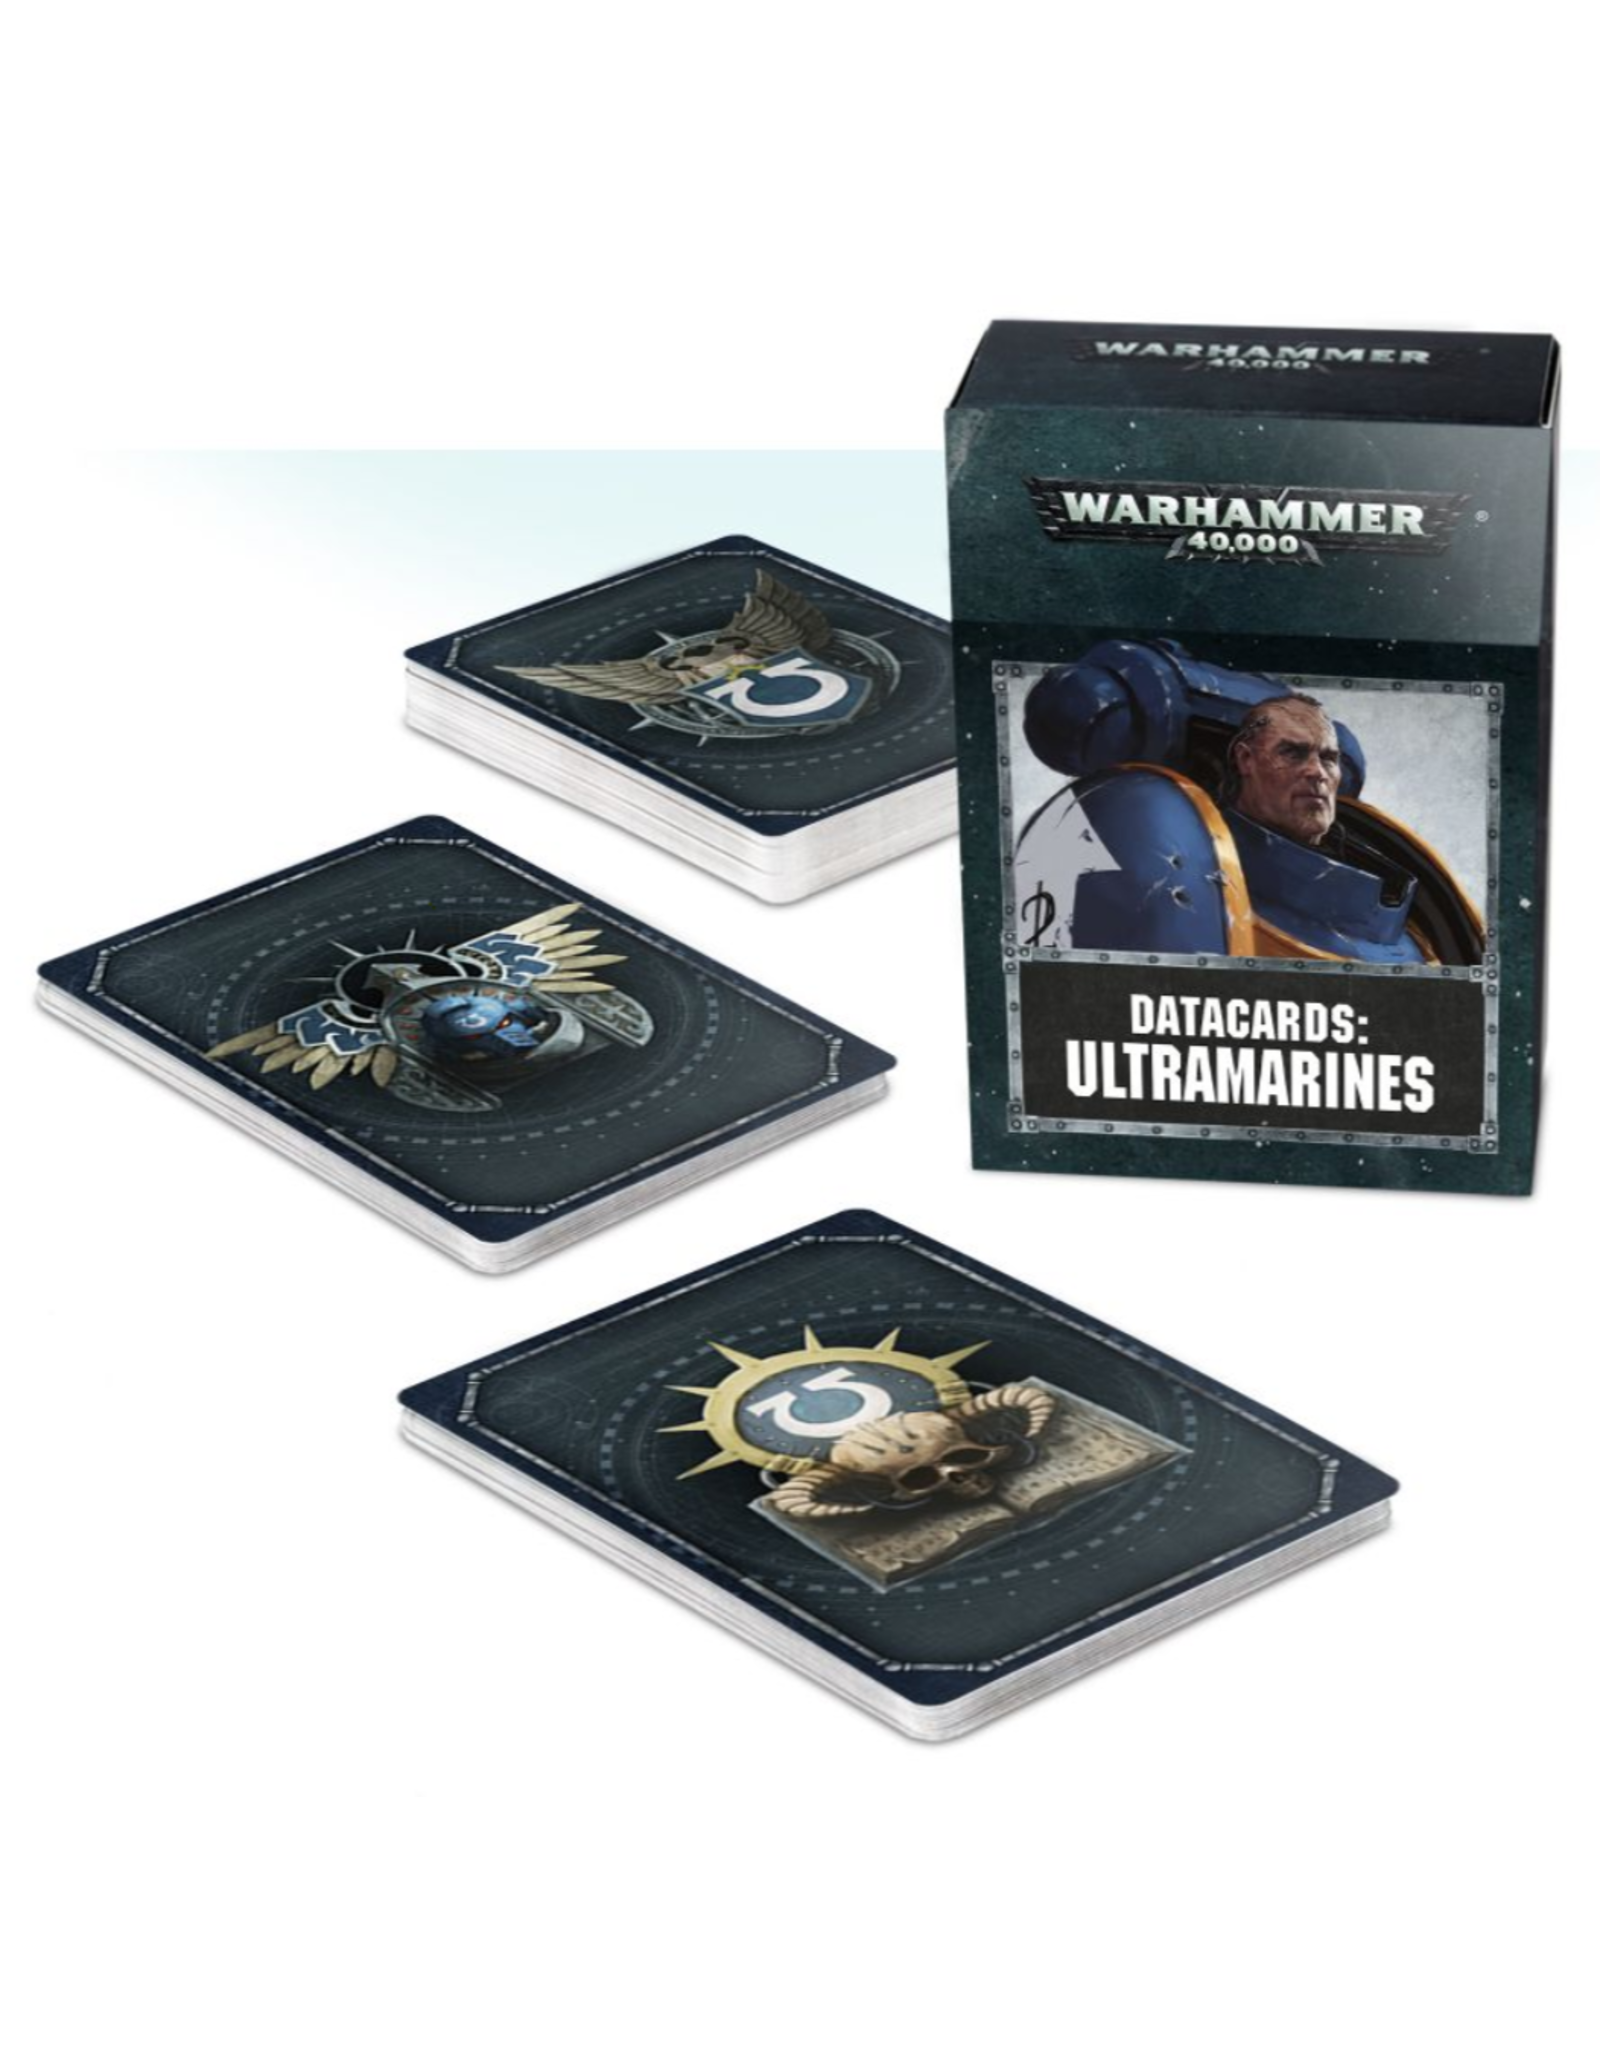 Warhammer 40K Ultramarines Datacards